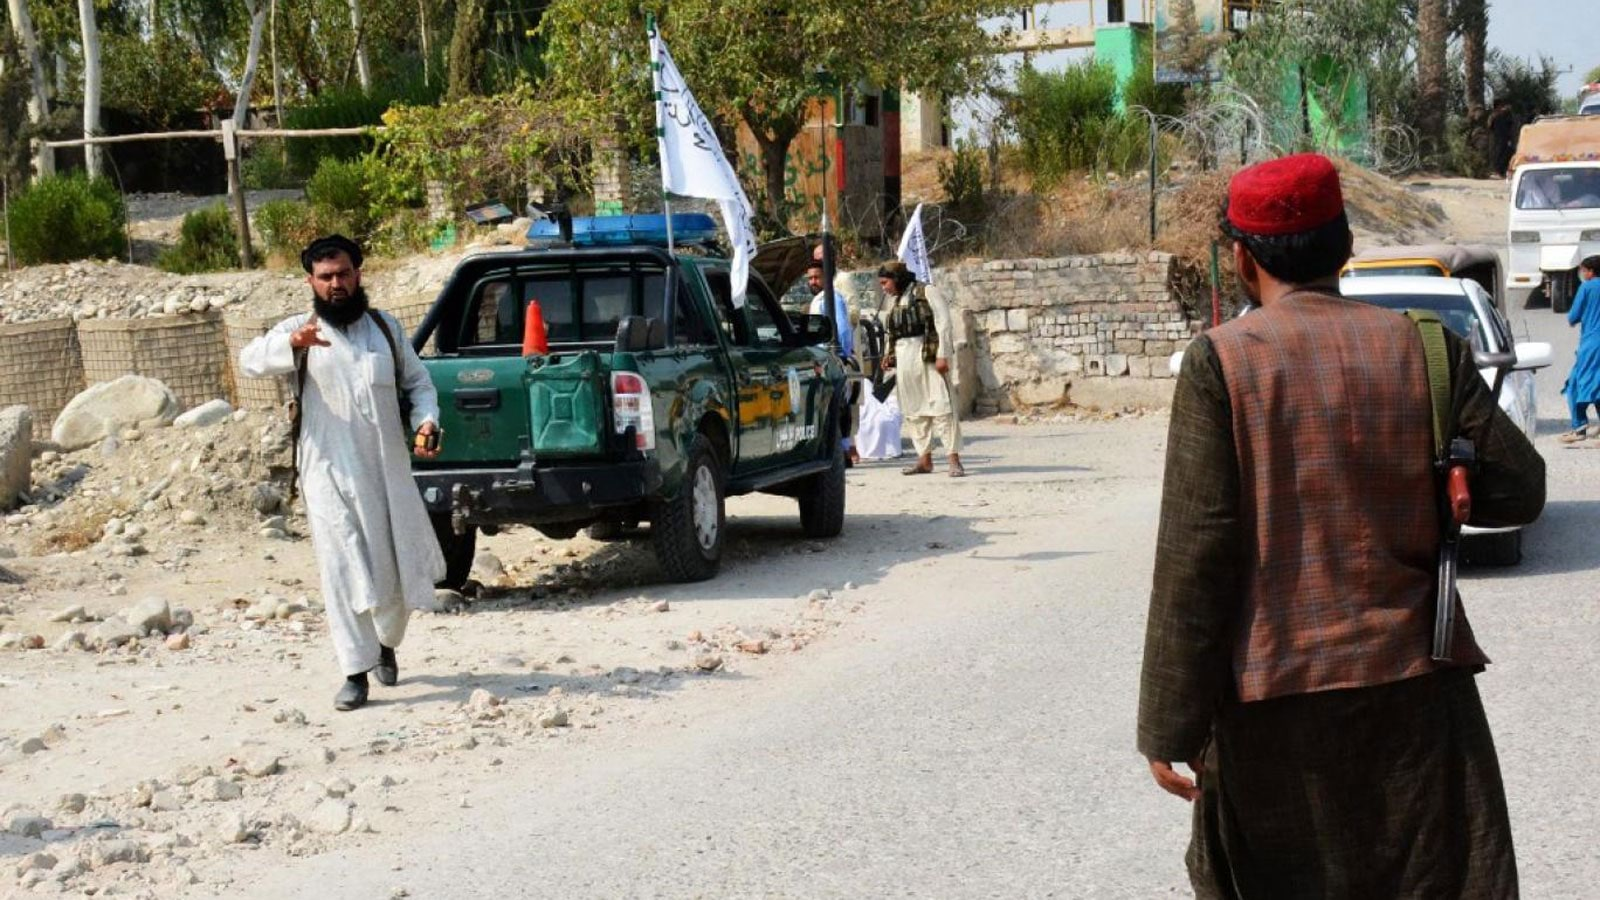 2 Taliban Fighters, 1 Civilian Killed In Attack On Checkpoint In Jalalabad